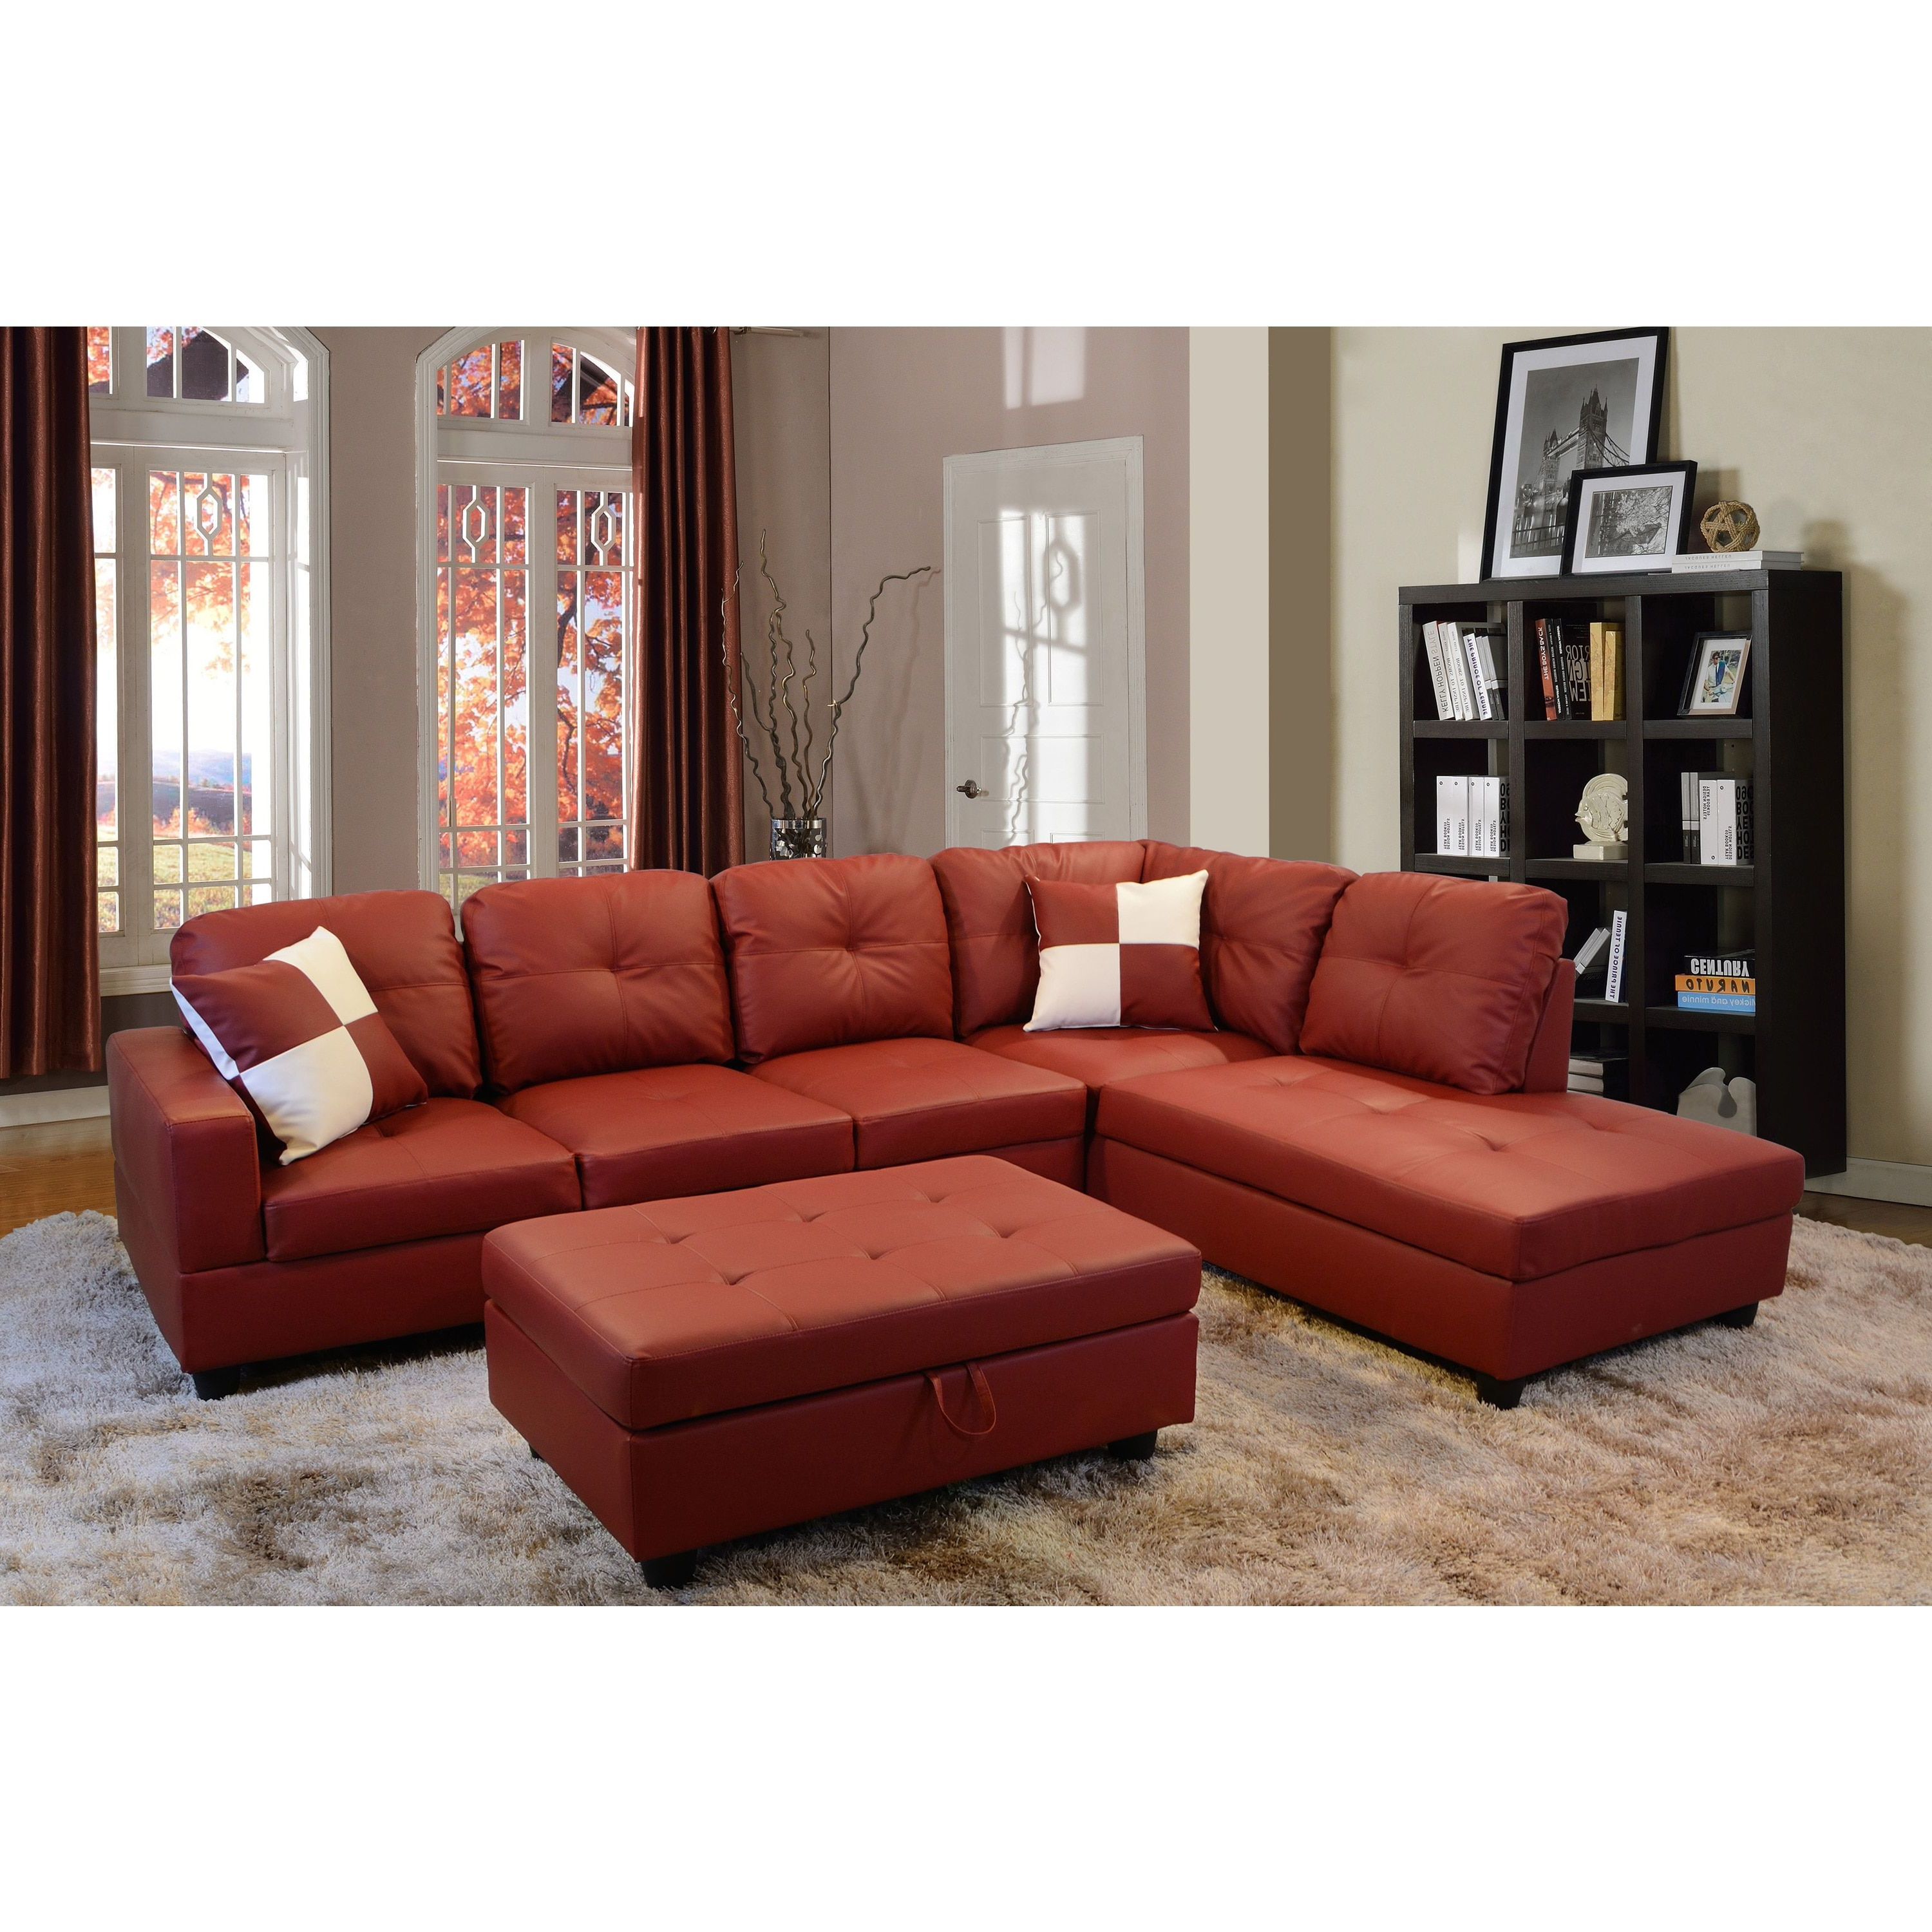 Delma 3 Piece Red Faux Leather Furniture Set (Delma 3 Pc Faux Pertaining To Fashionable Tenny Dark Grey 2 Piece Right Facing Chaise Sectionals With 2 Headrest (Gallery 11 of 20)